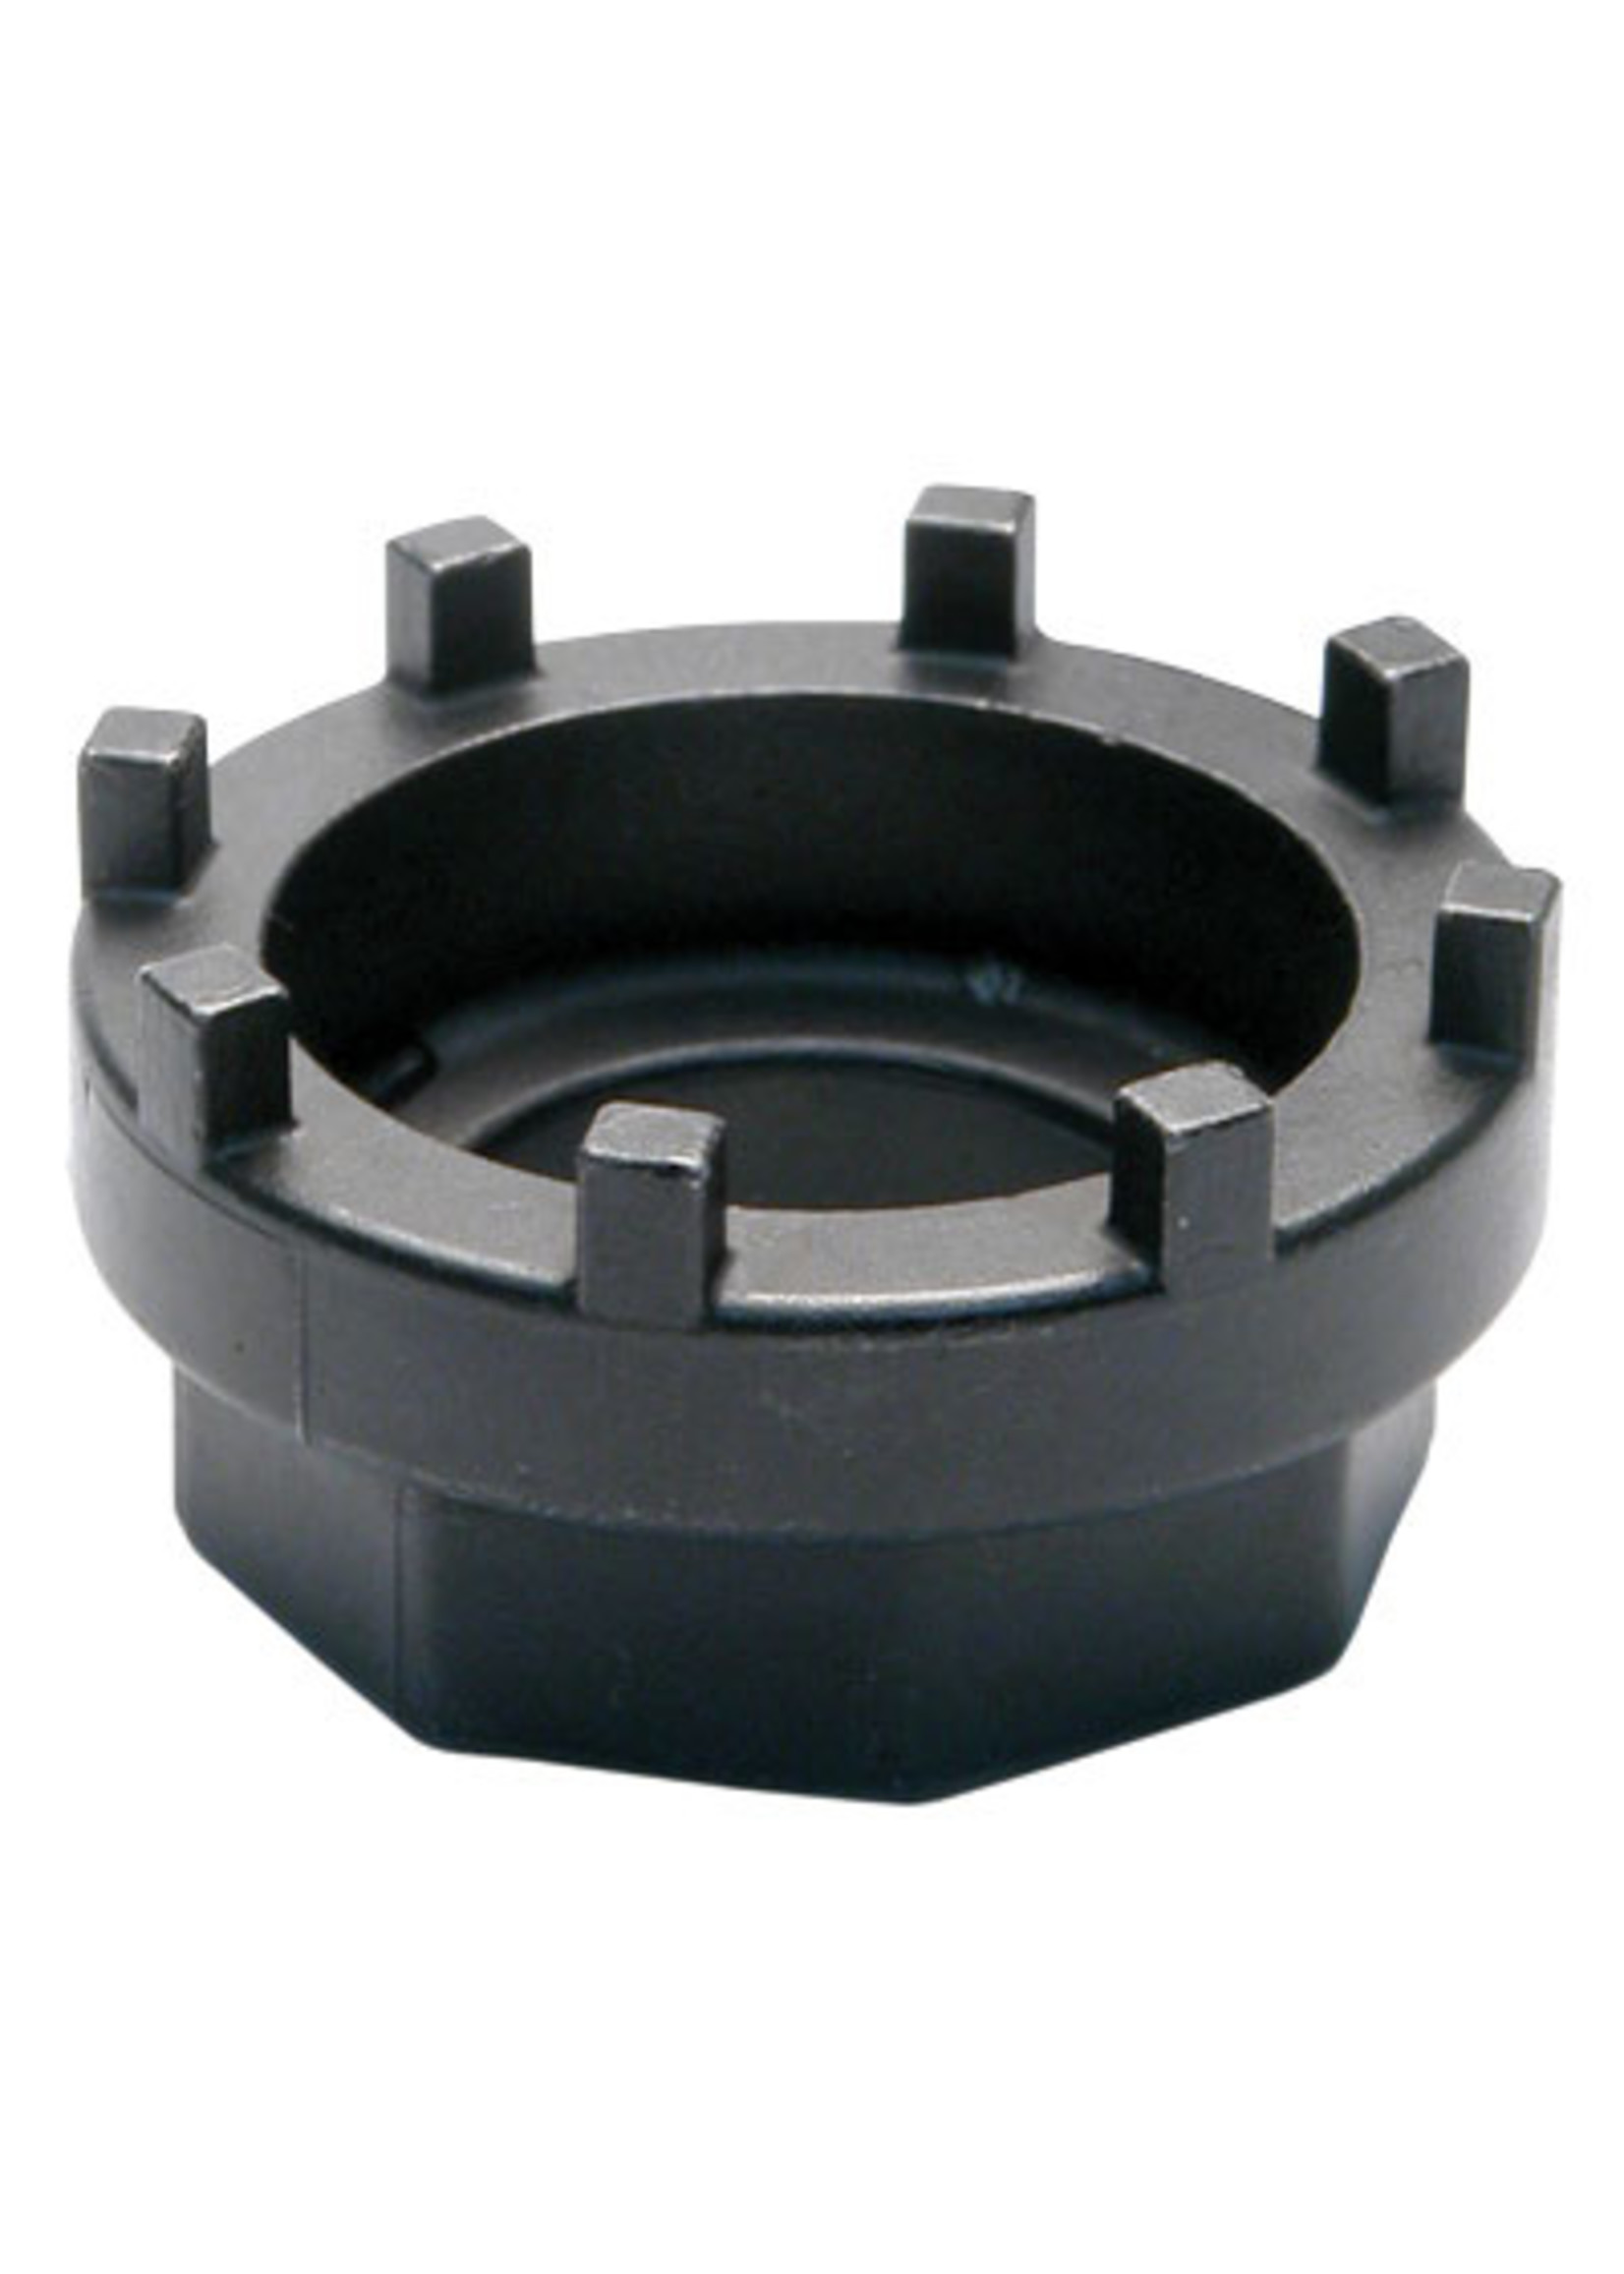 PARK TOOL Park Tool BBT-18 Bottom Bracket Tool for 8-Notch ISIS Cups